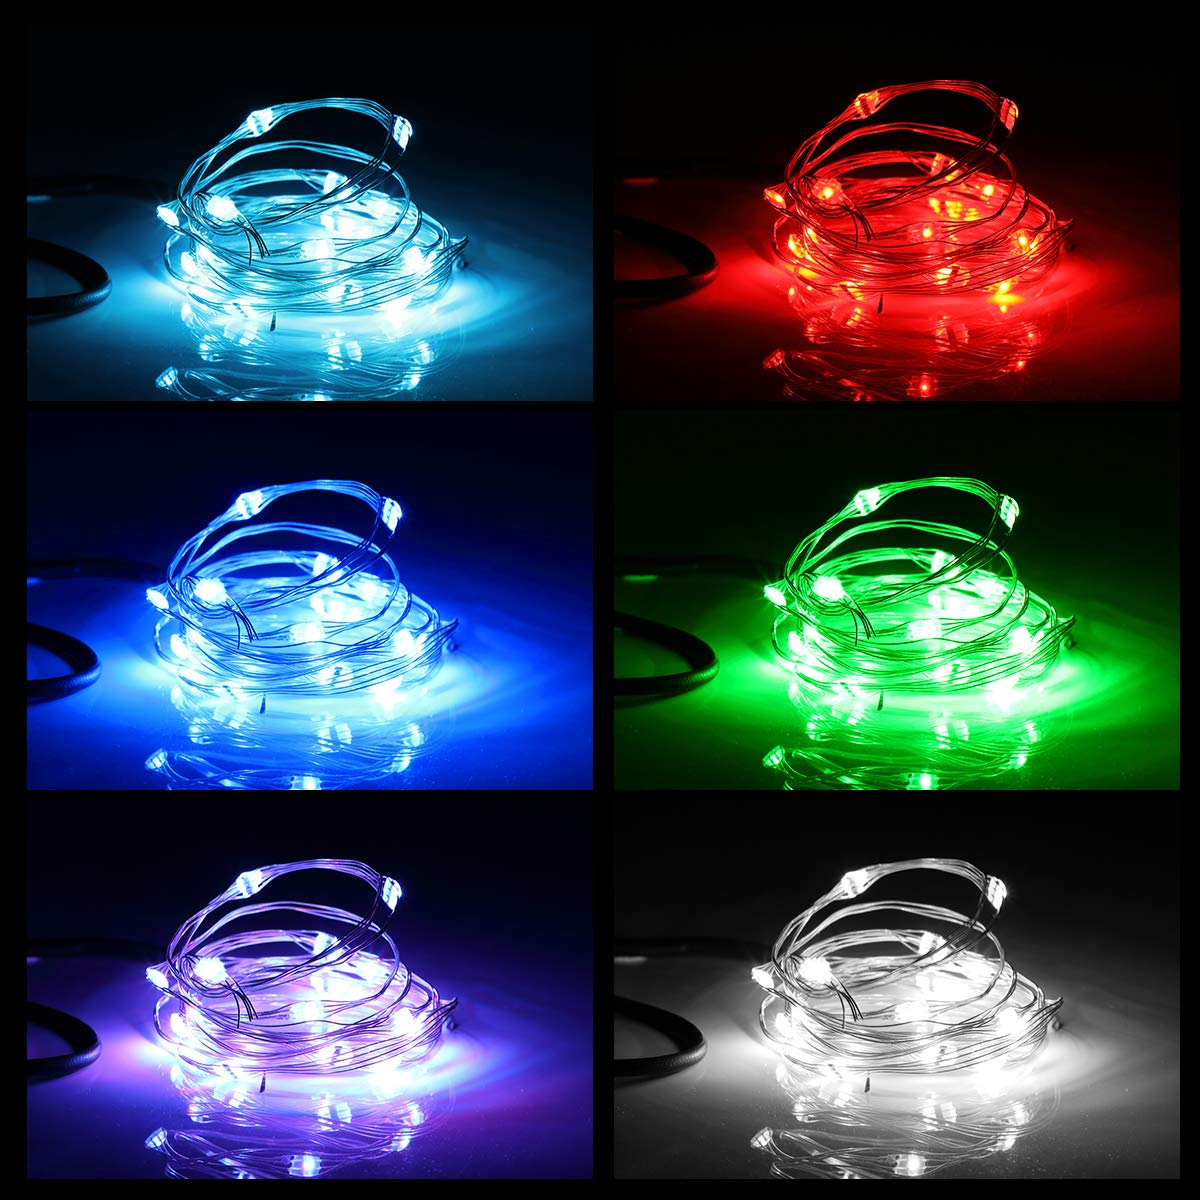 AOYOO Bicycle Wheel Light Night Light (1 Tire Pack) Waterproof 7 Color Outdoor Lighting Bicycle Tire Accessories You Can Choose Your Favorite Color 18 Flash Pattern Personality Selection, Safety Spoke by AOYOO (Image #4)